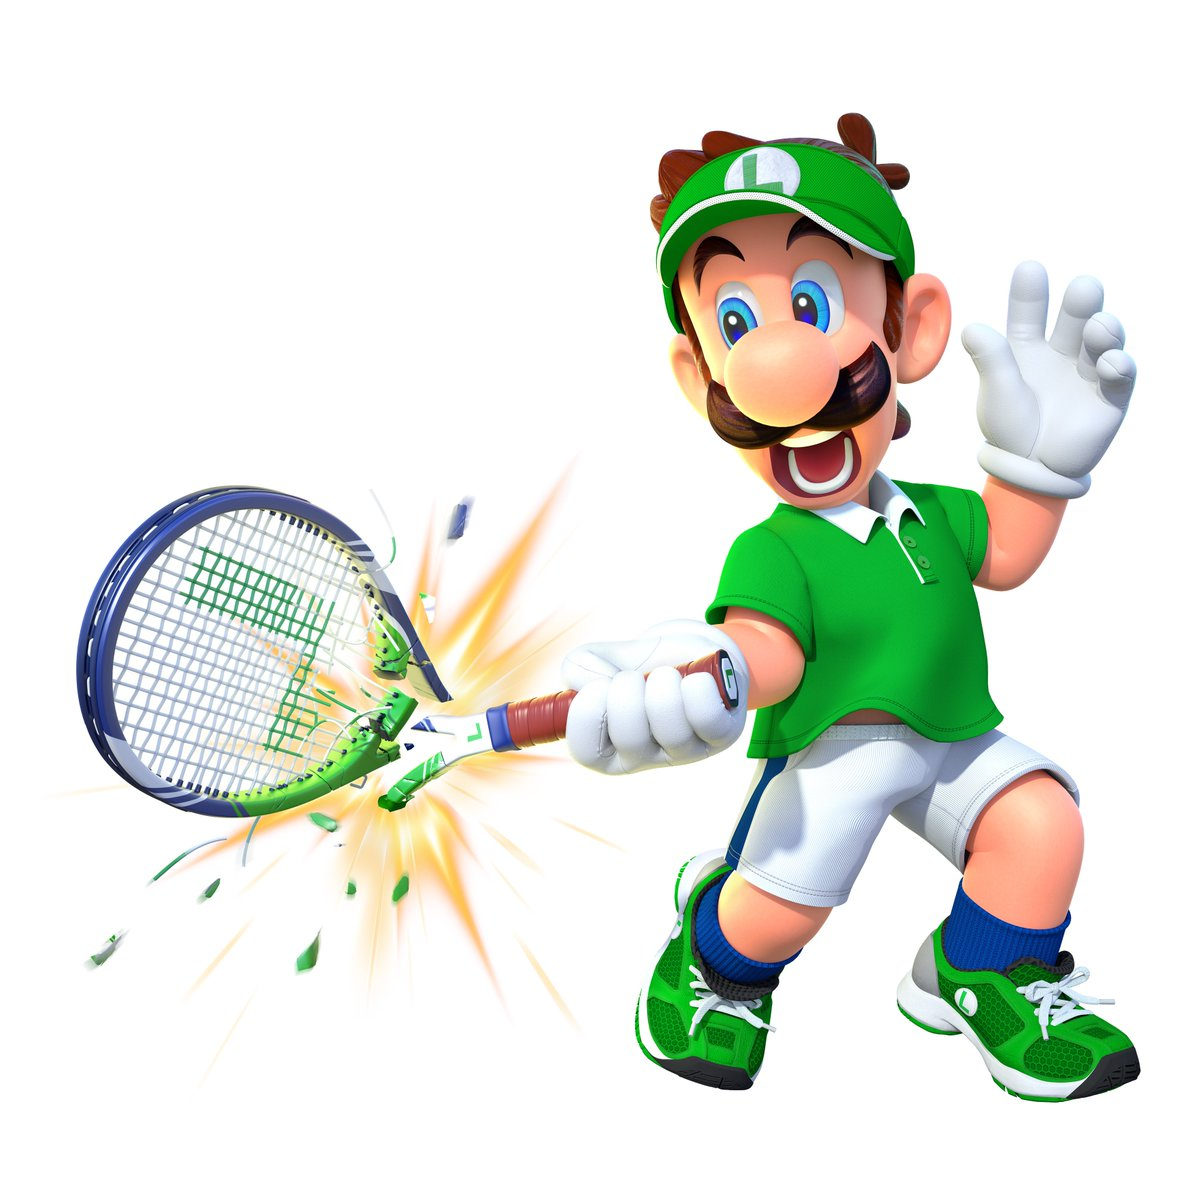 mario tennis open 100 completely free dating site for fat people